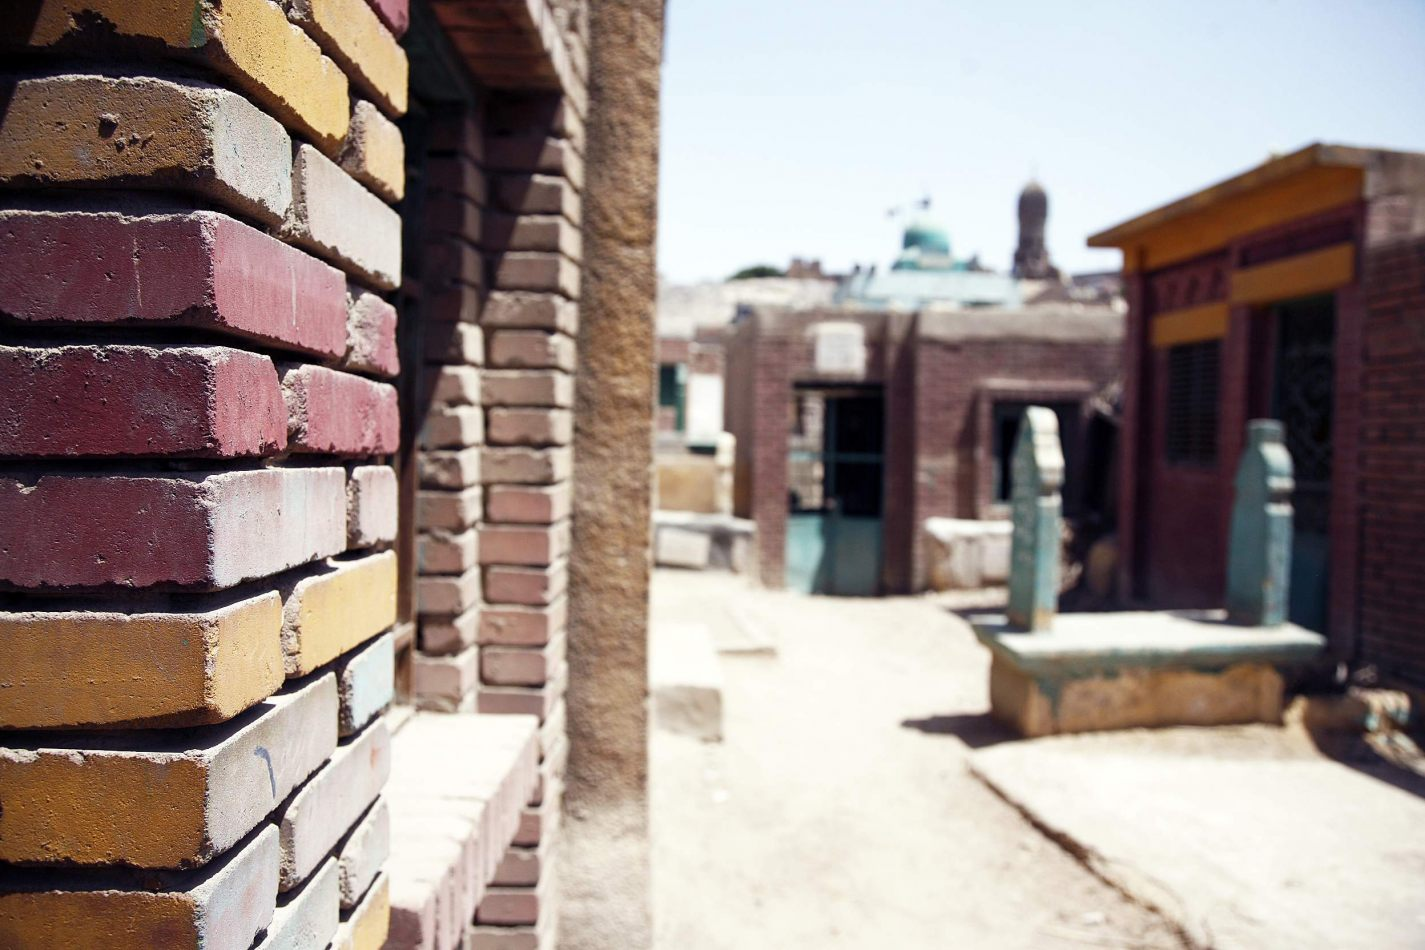 Anthony Ellis Photography: Submit to the Will - Coloured Bricks